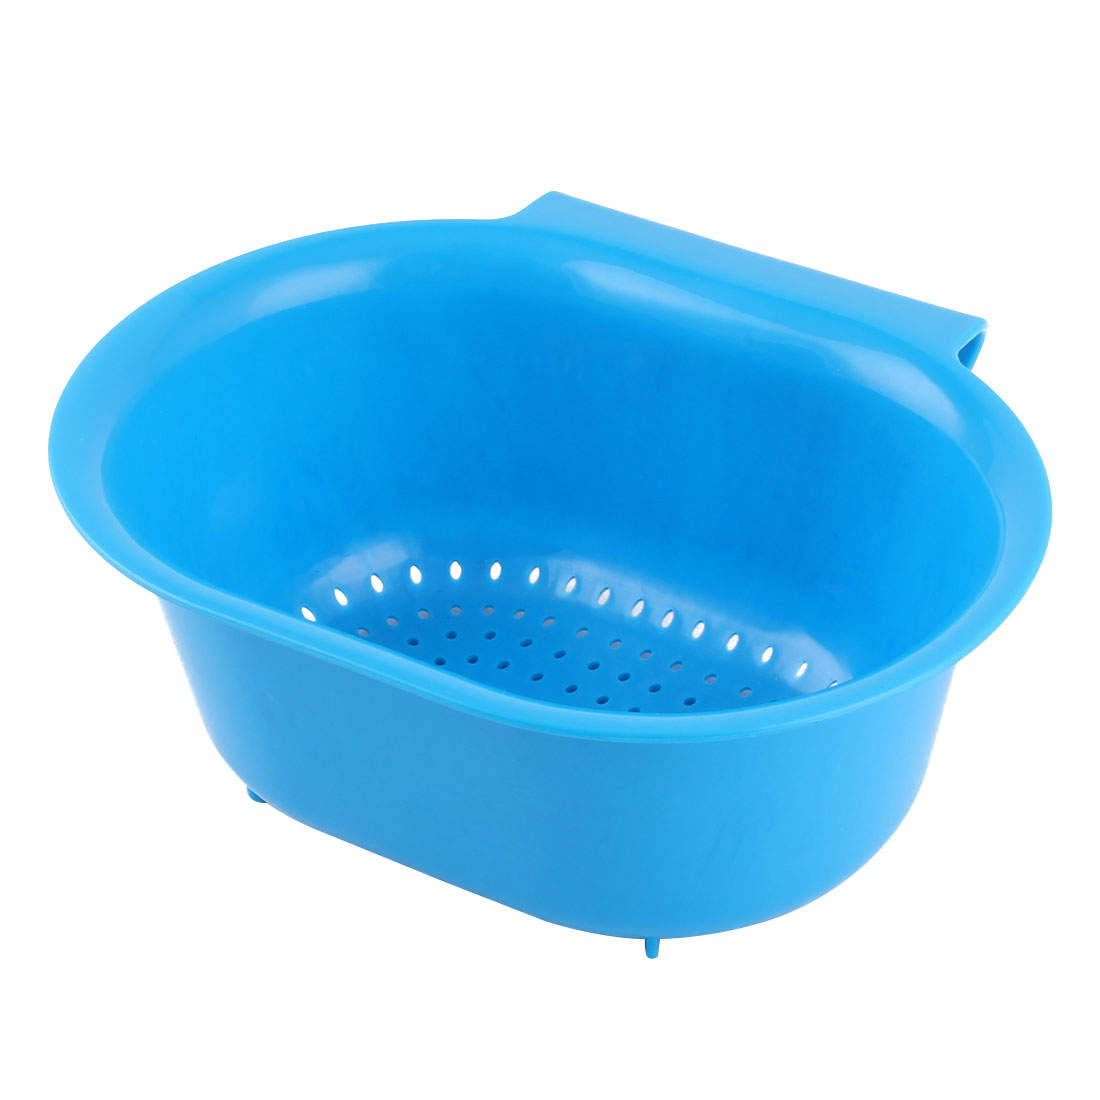 Home Kitchenware Plastic Hollow Out Fruit Vegetable Washing Tool Basket Strainer Blue